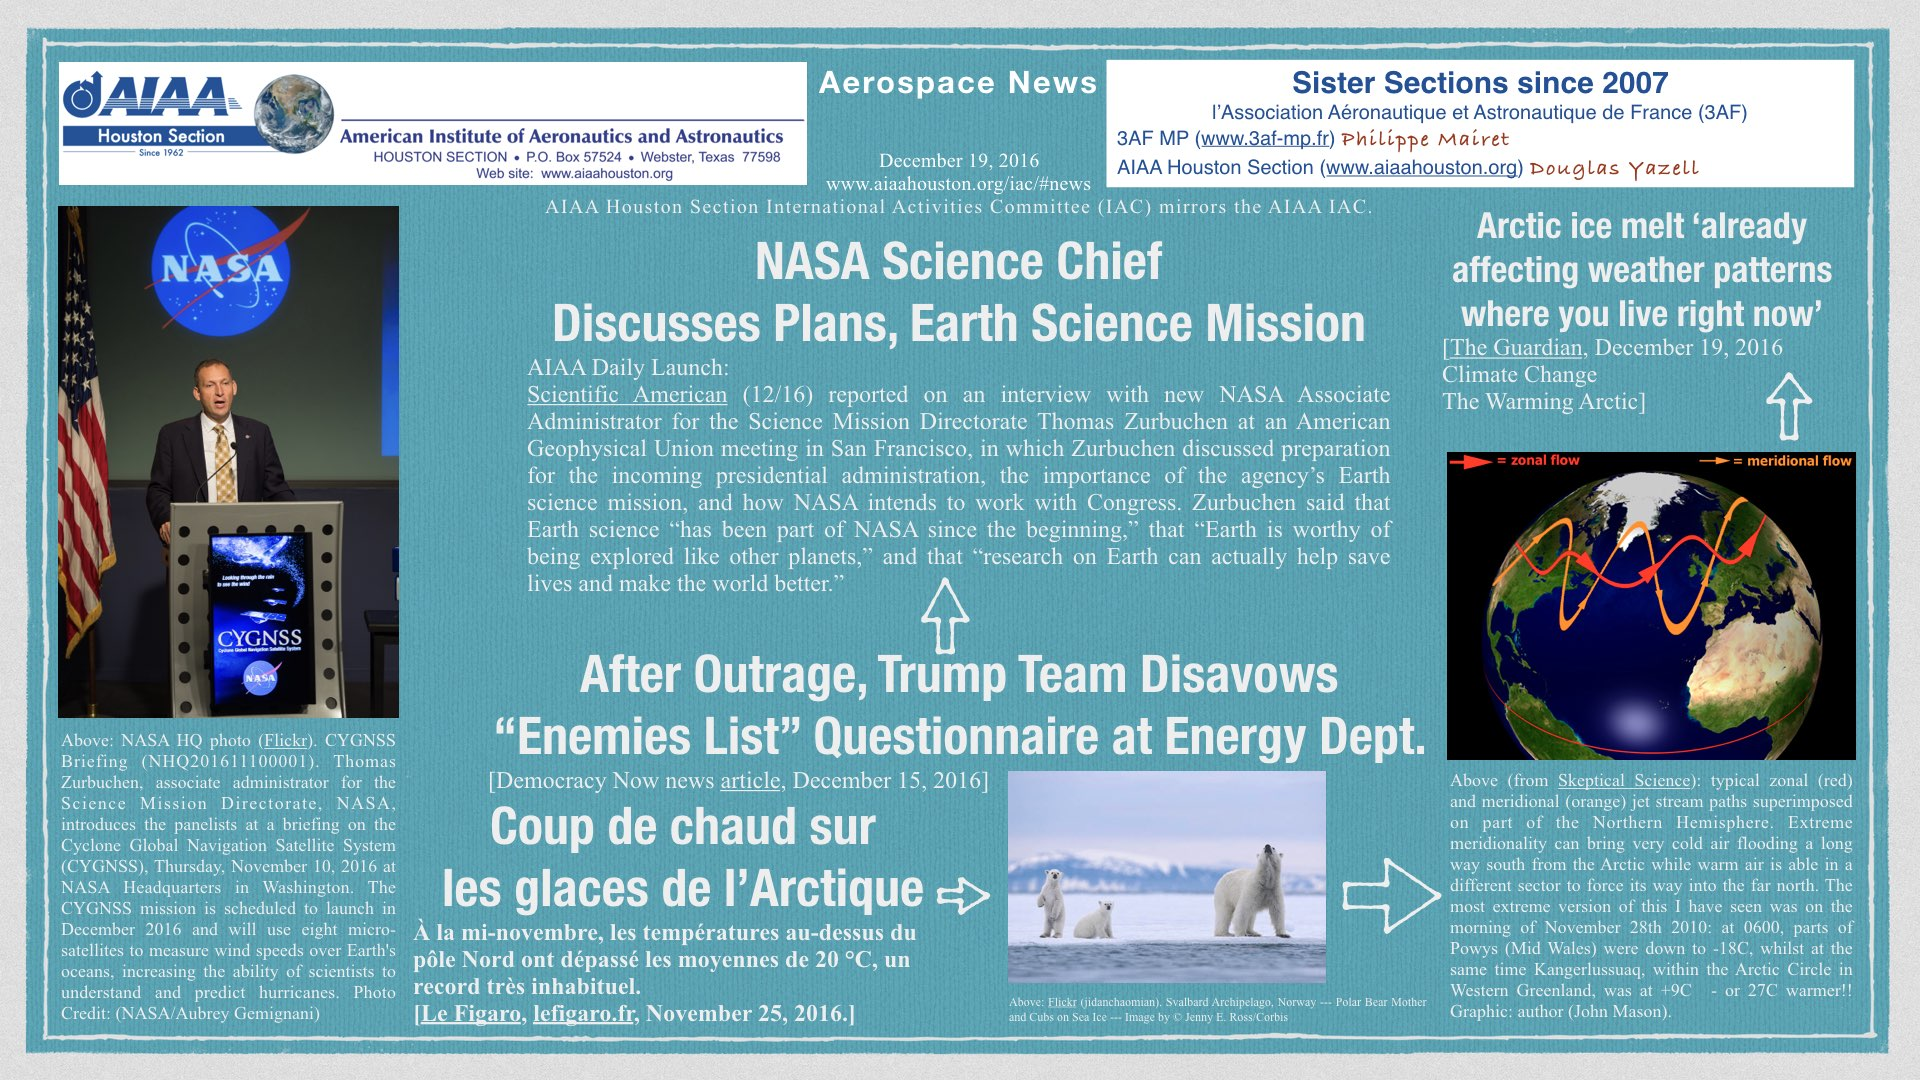 Above: NASA Science Chief Discusses Plans, Earth Science Mission. AIAA Daily Launch. Scientific American, December 16, 2016. (Click to zoom.)